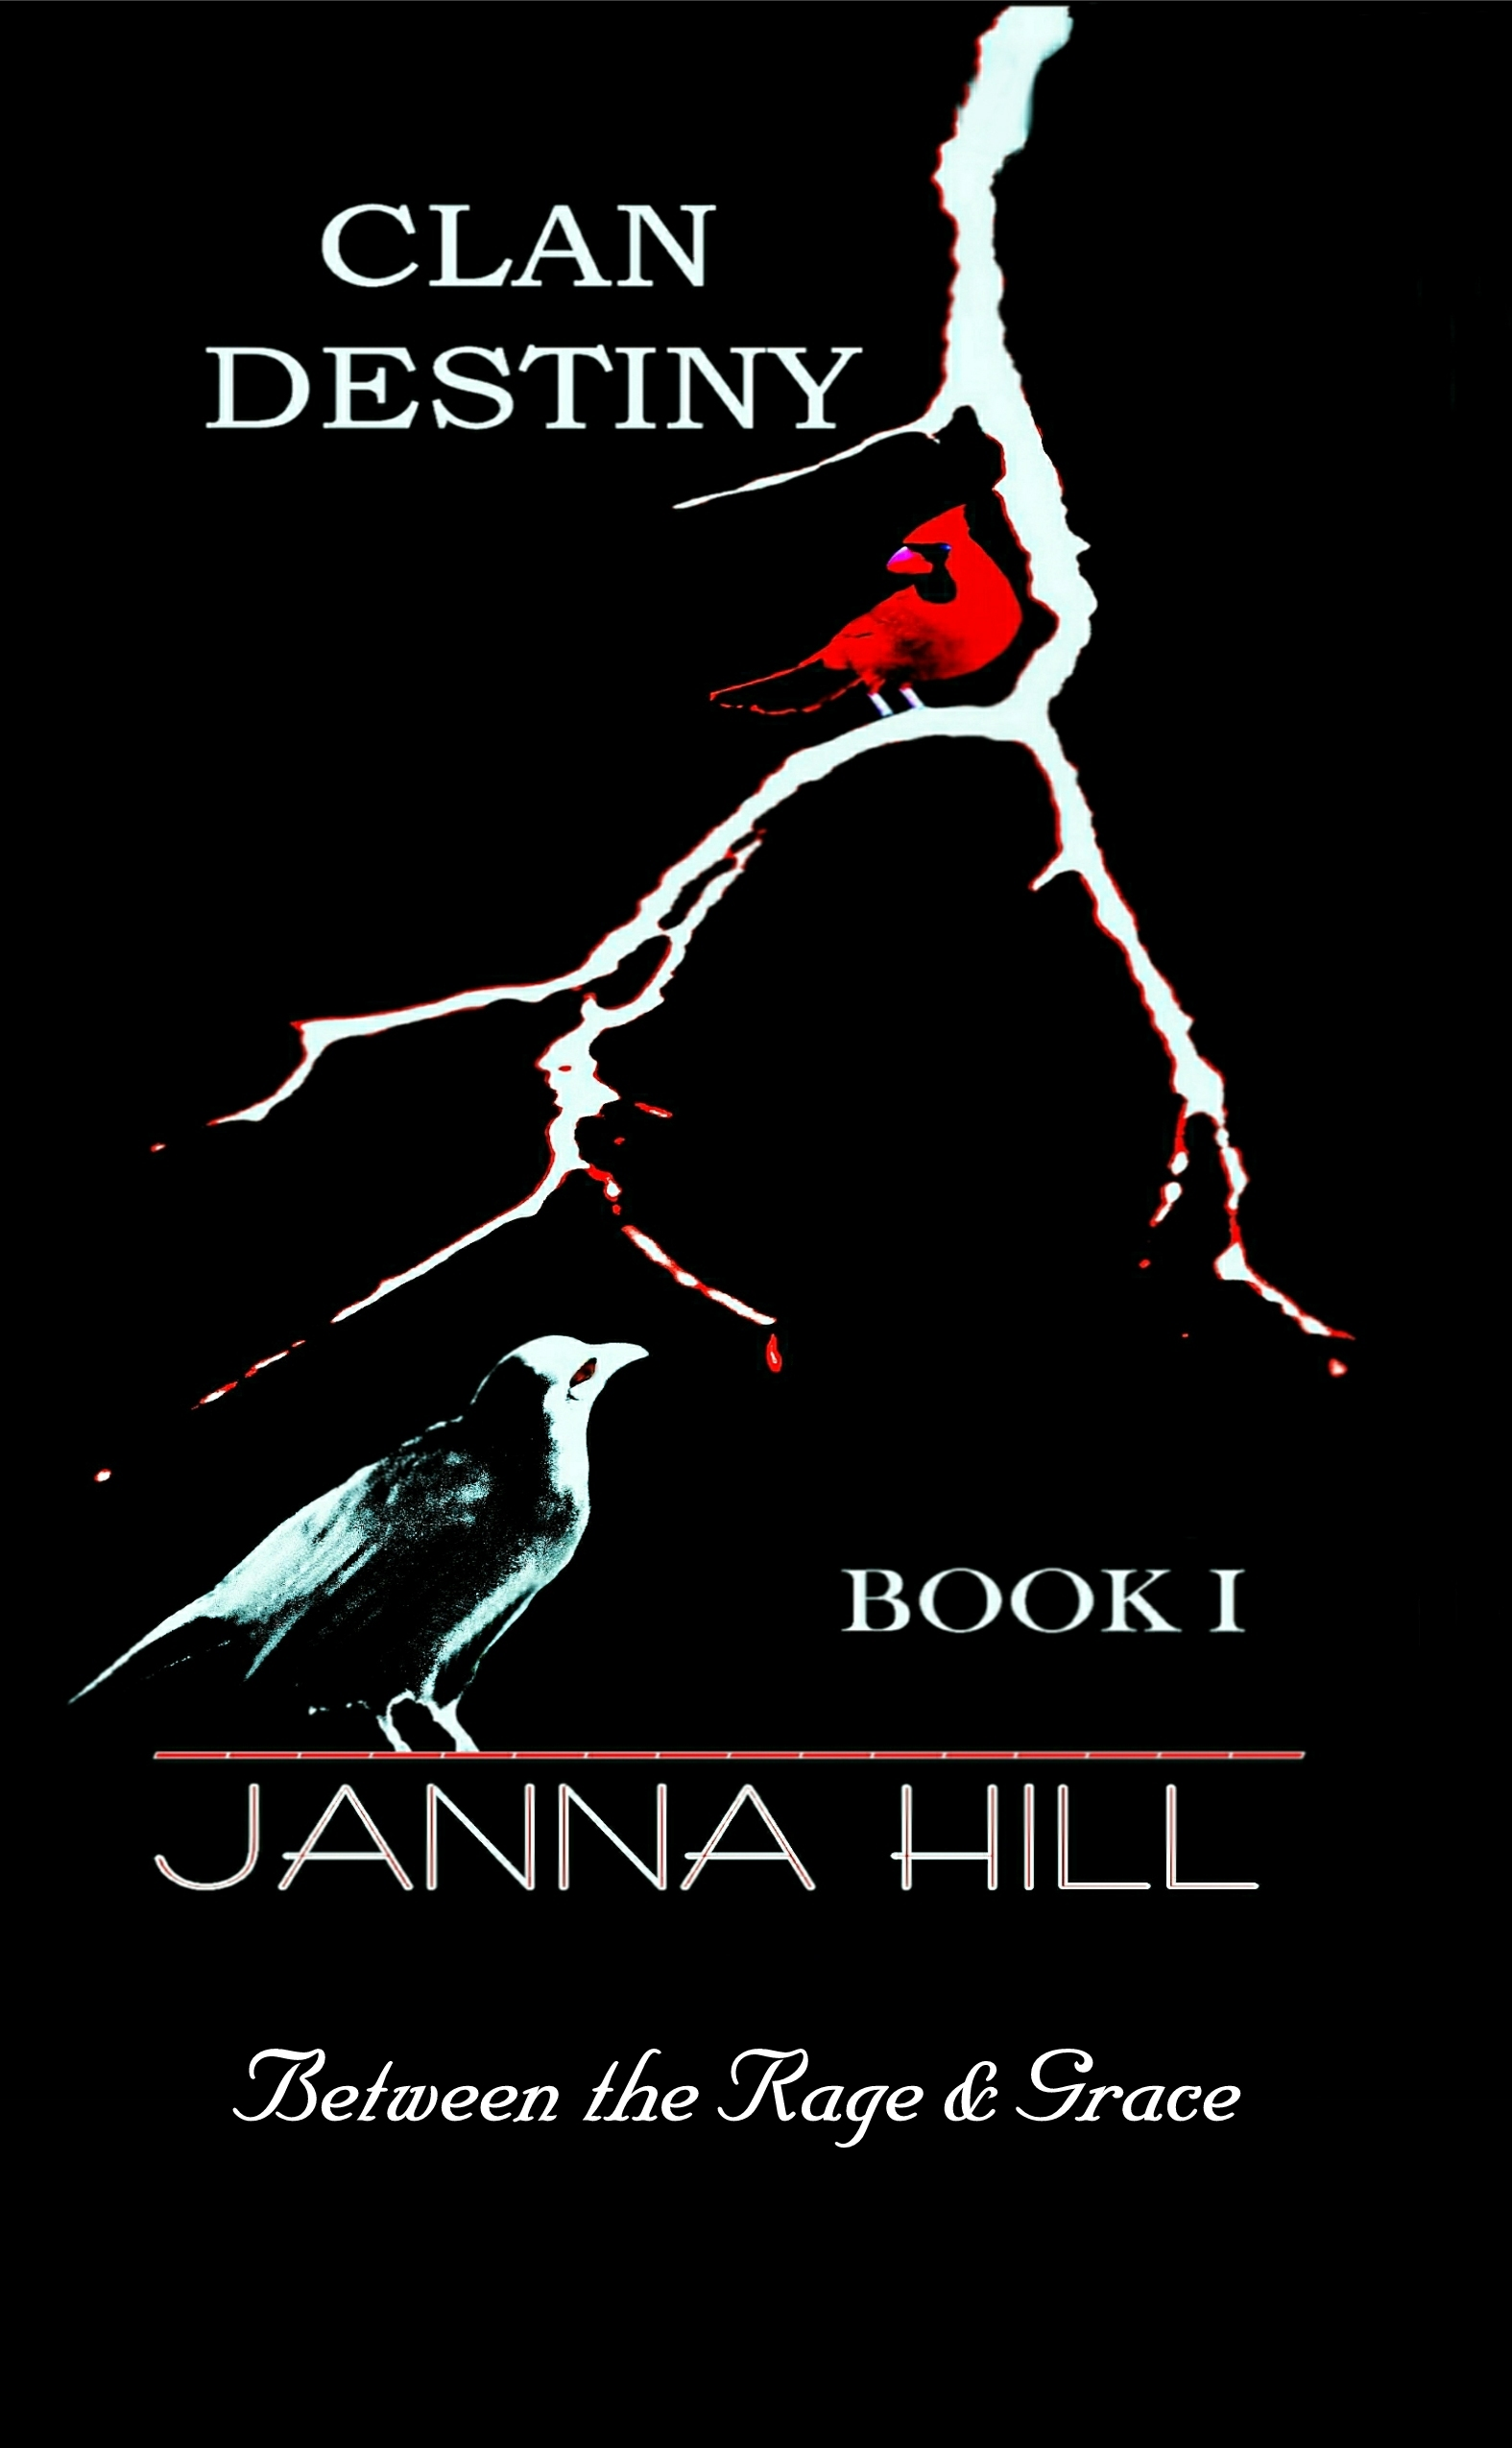 BOOK 1 COVER with title